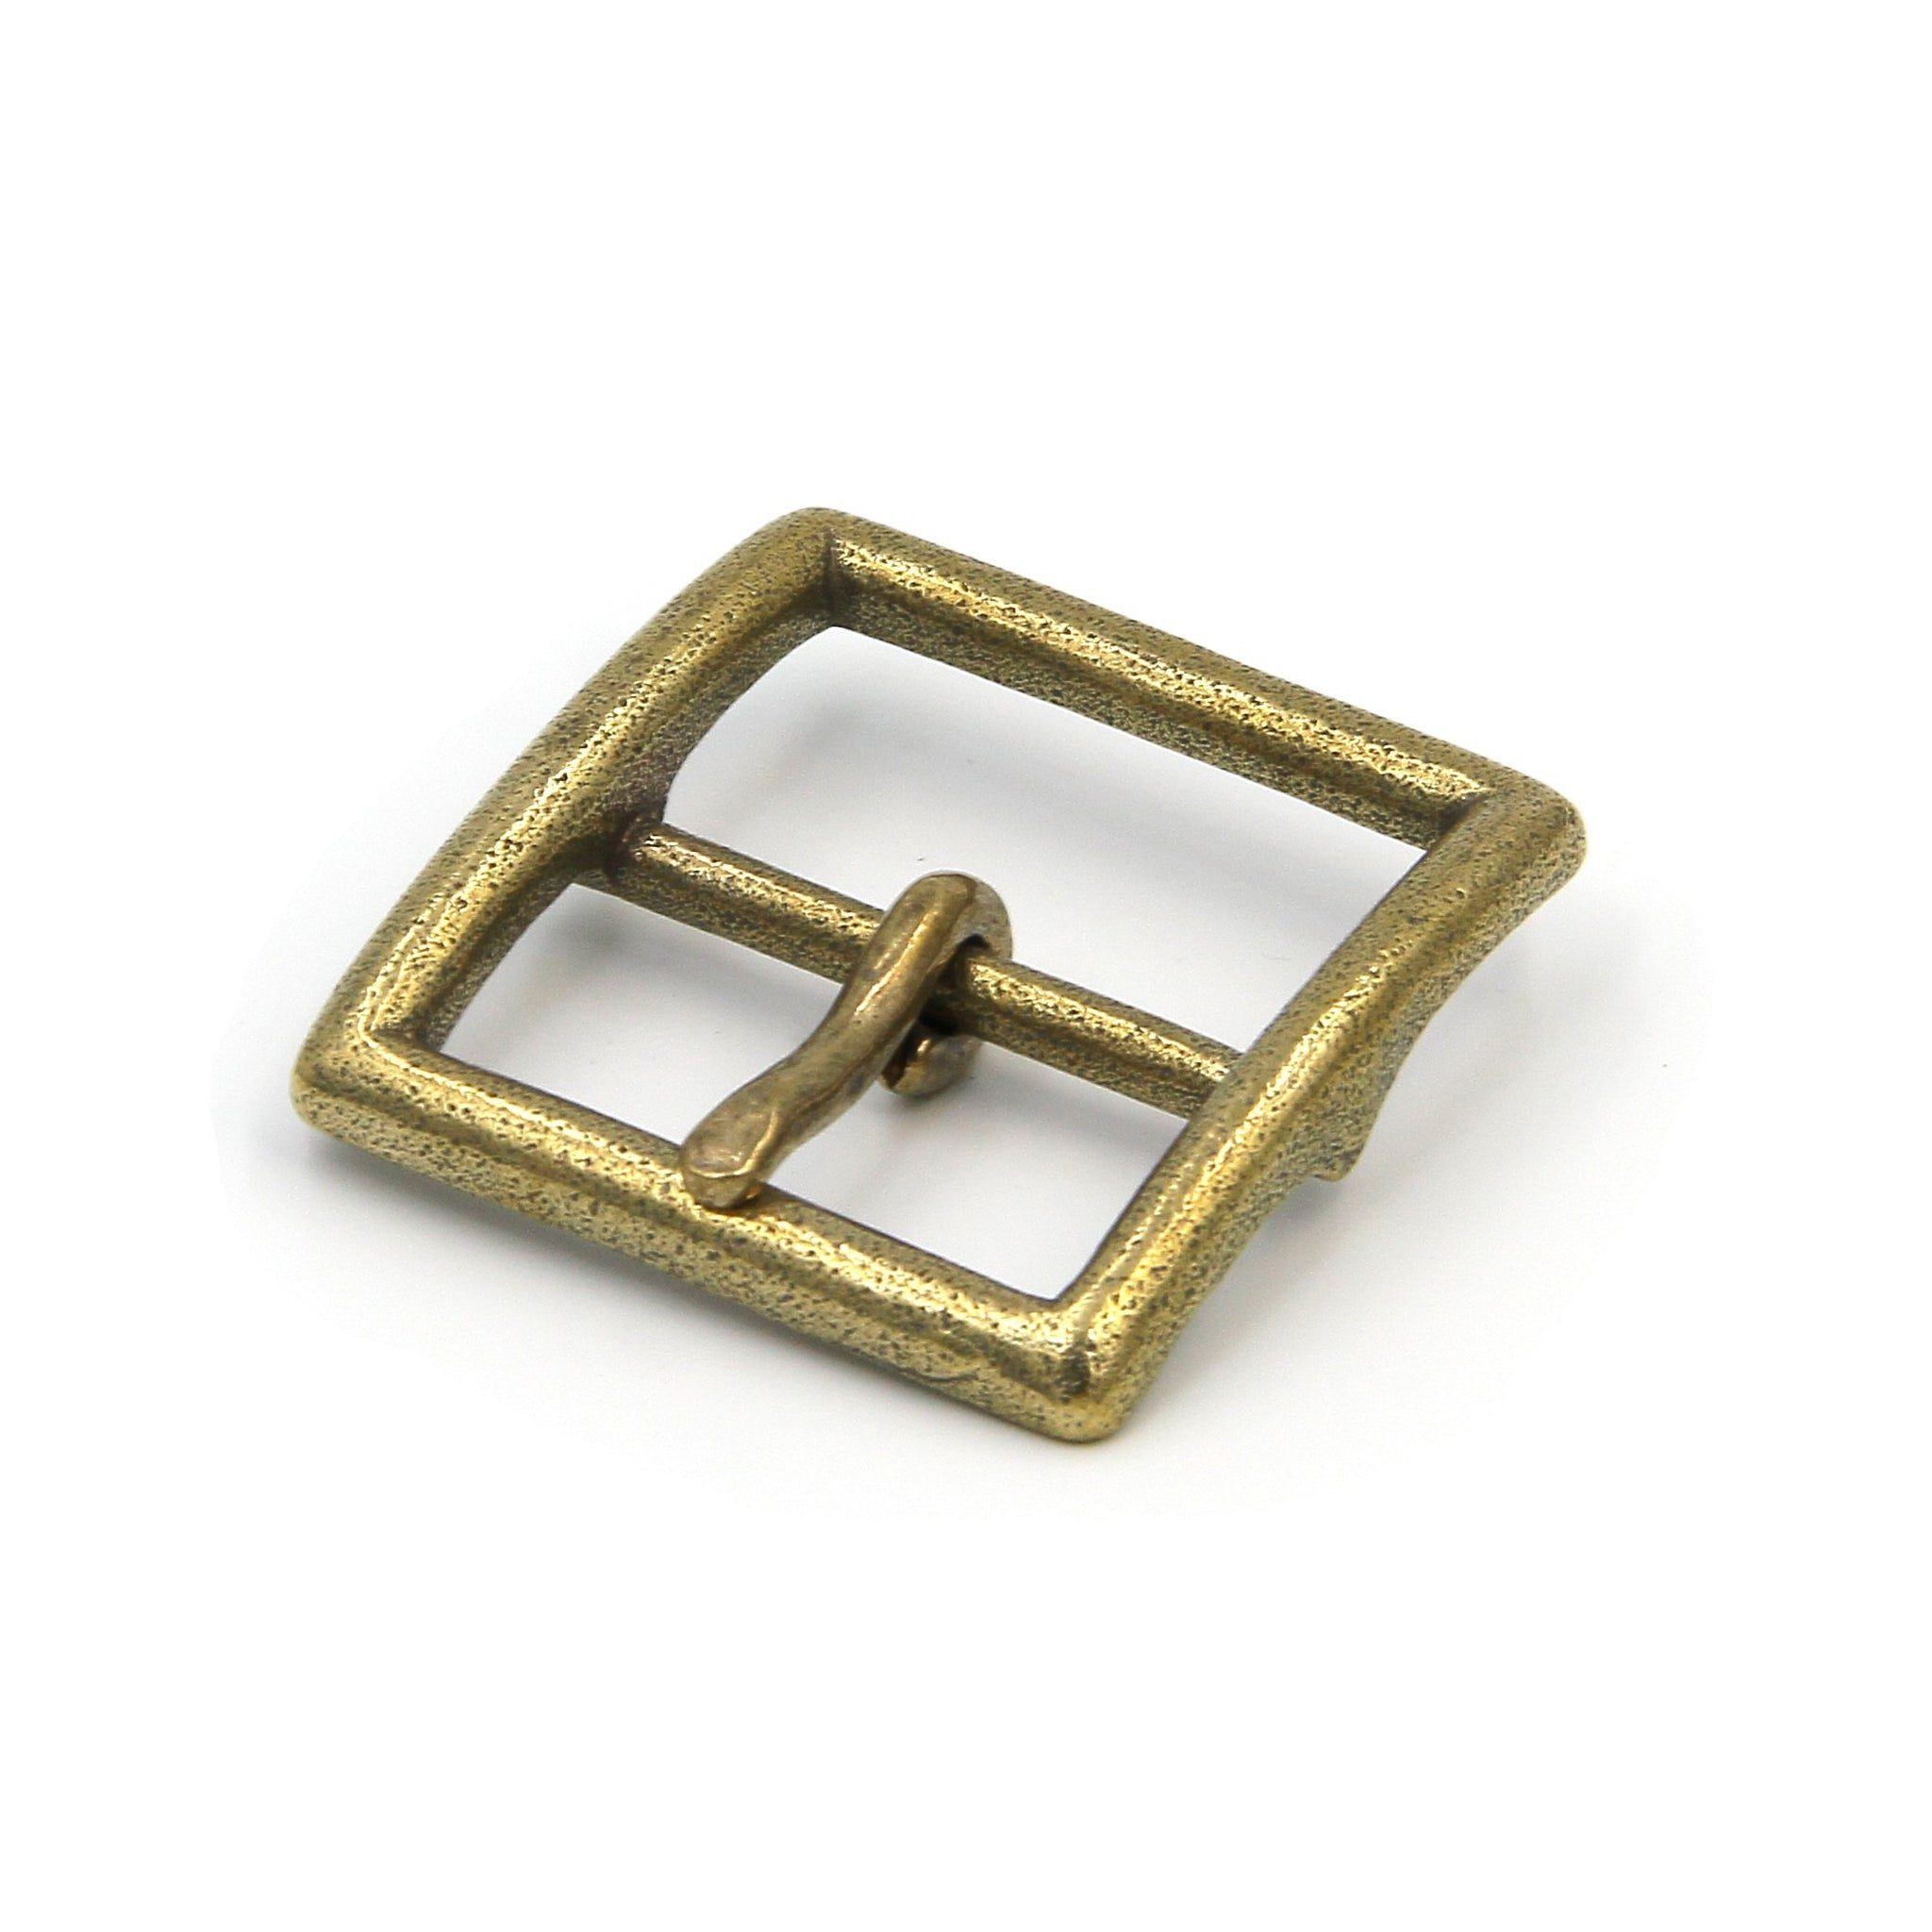 Retro Brass Vintage Buckle for Handmade Leather Belts - Metal Field